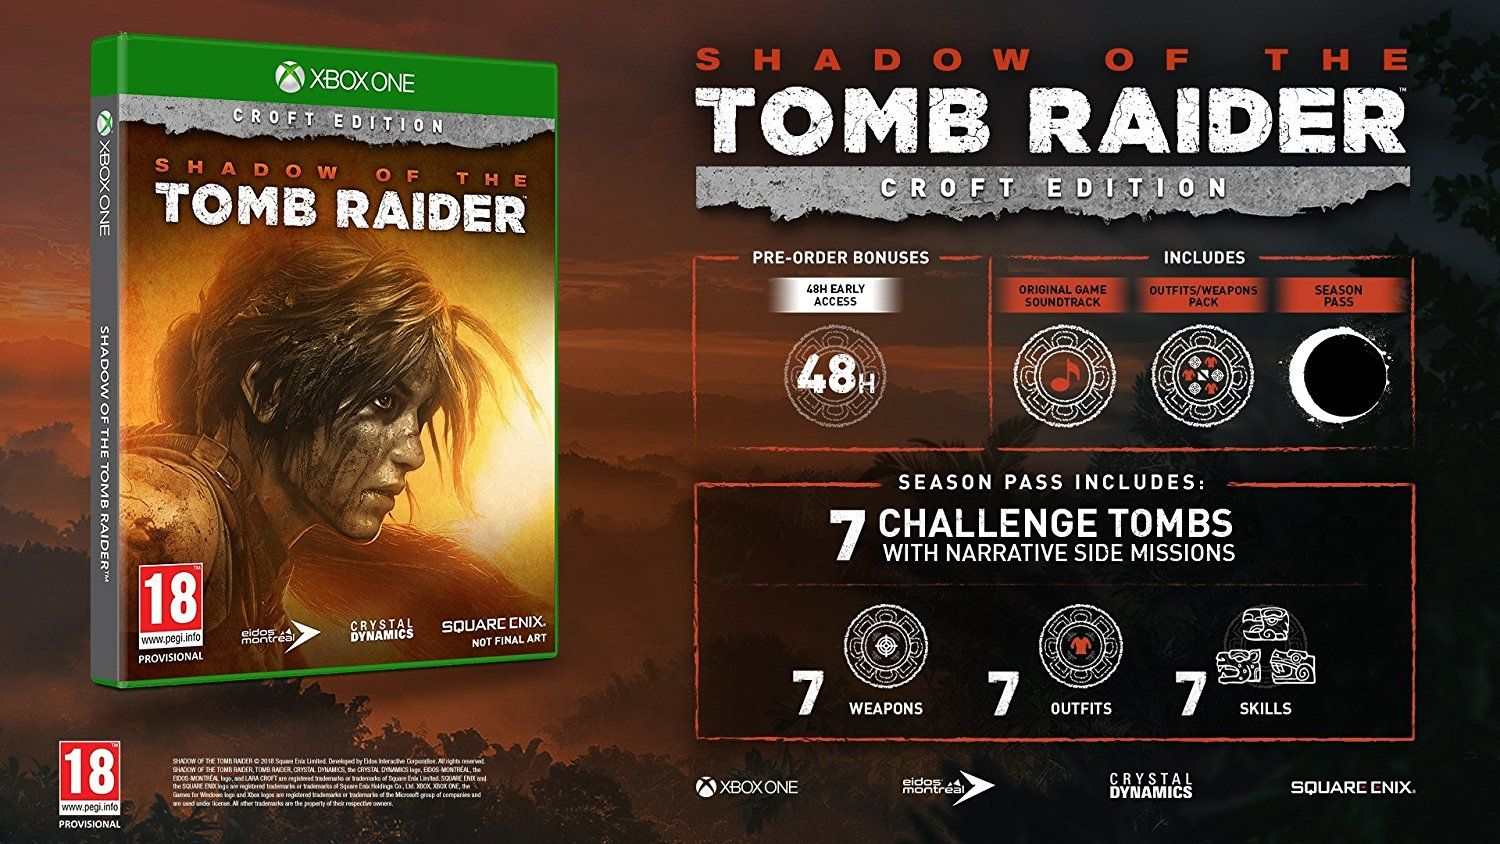 Shadow Of The Tomb Raider Croft Edition (Xbox One) - 5